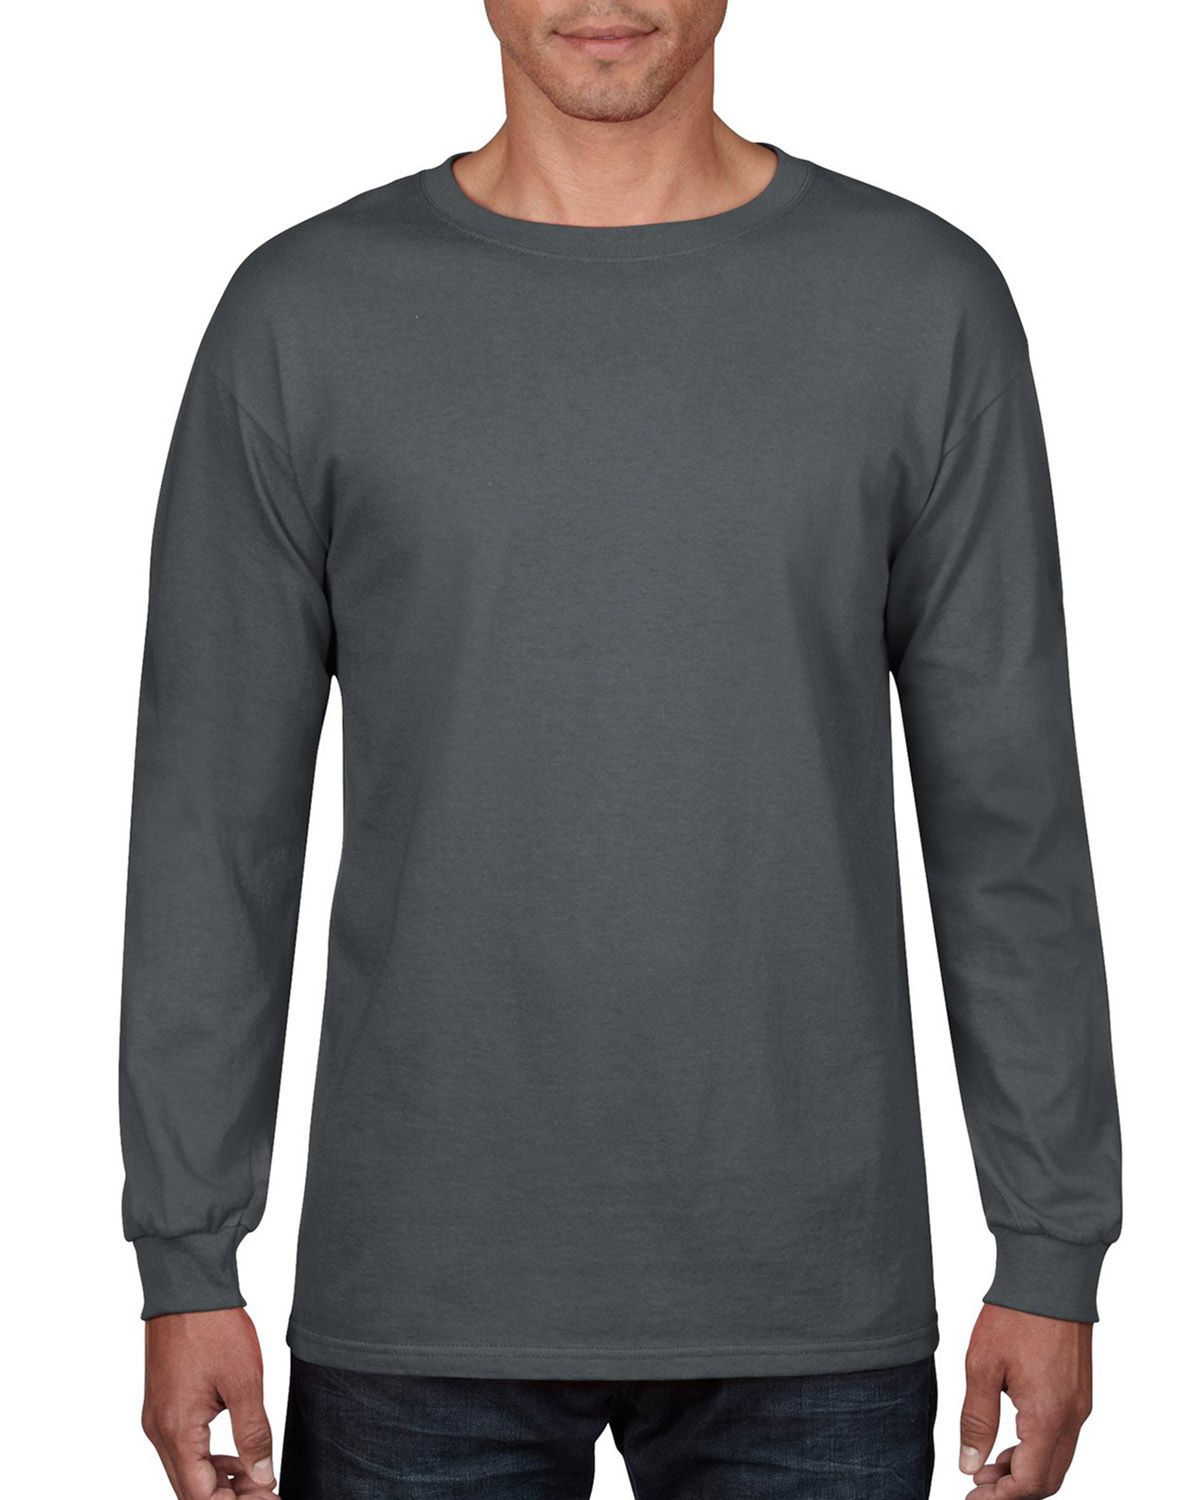 Anvil 784 Anvil Midweight Long Sleeve Cotton Tee - Charcoal - S 784